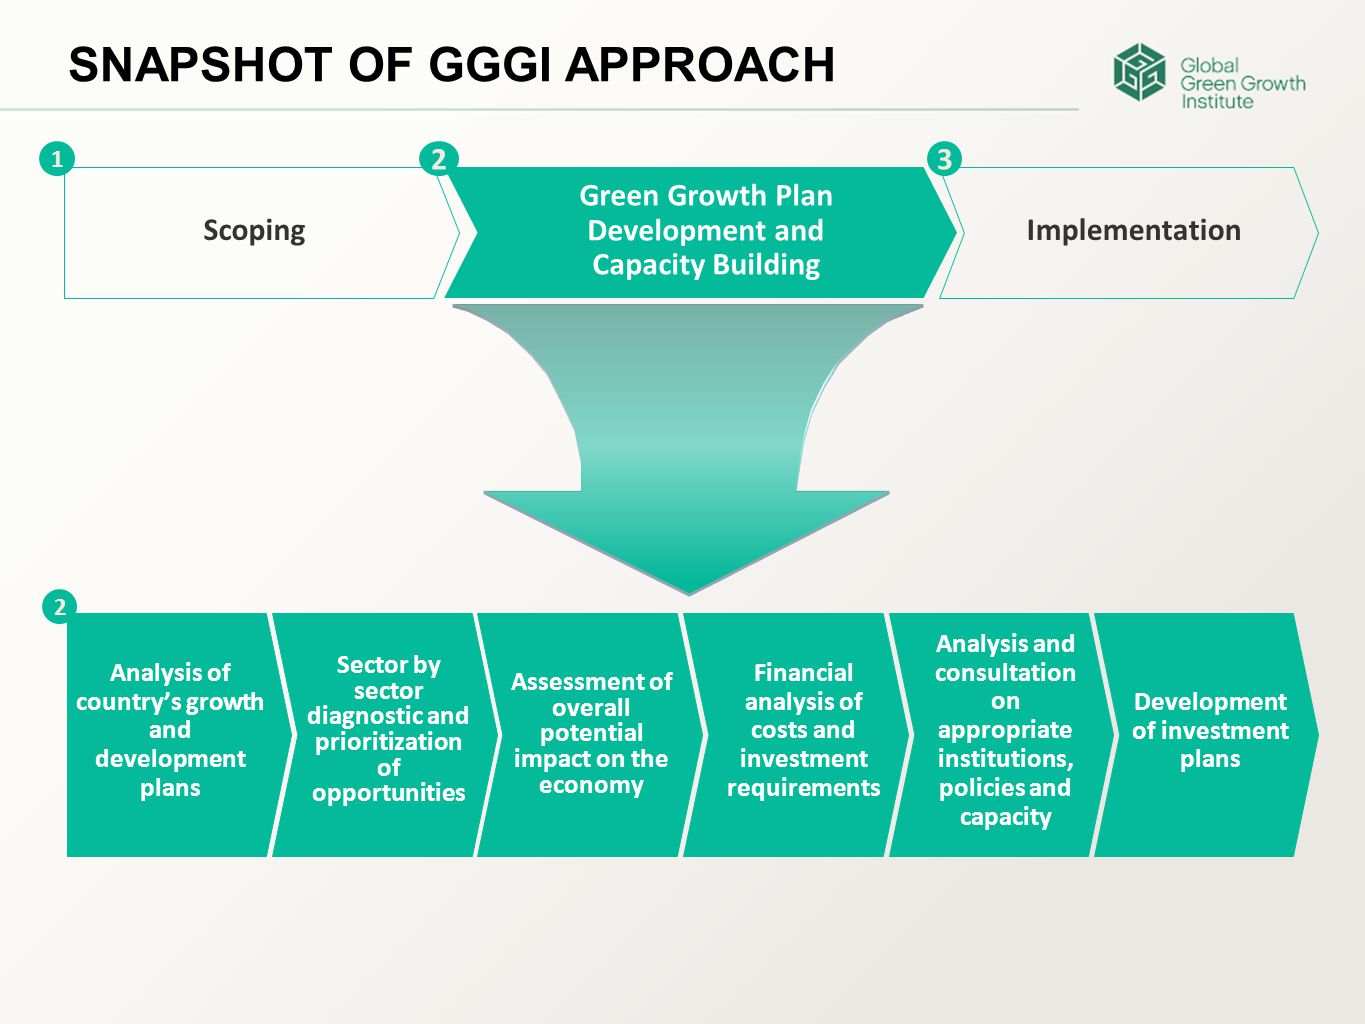 SNAPSHOT OF GGGI APPROACH Scoping Green Growth Plan Development and Capacity Building Implementation 1 23 Analysis of country's growth and development plans Assessment of overall potential impact on the economy Sector by sector diagnostic and prioritization of opportunities Financial analysis of costs and investment requirements Analysis and consultation on appropriate institutions, policies and capacity Development of investment plans 2